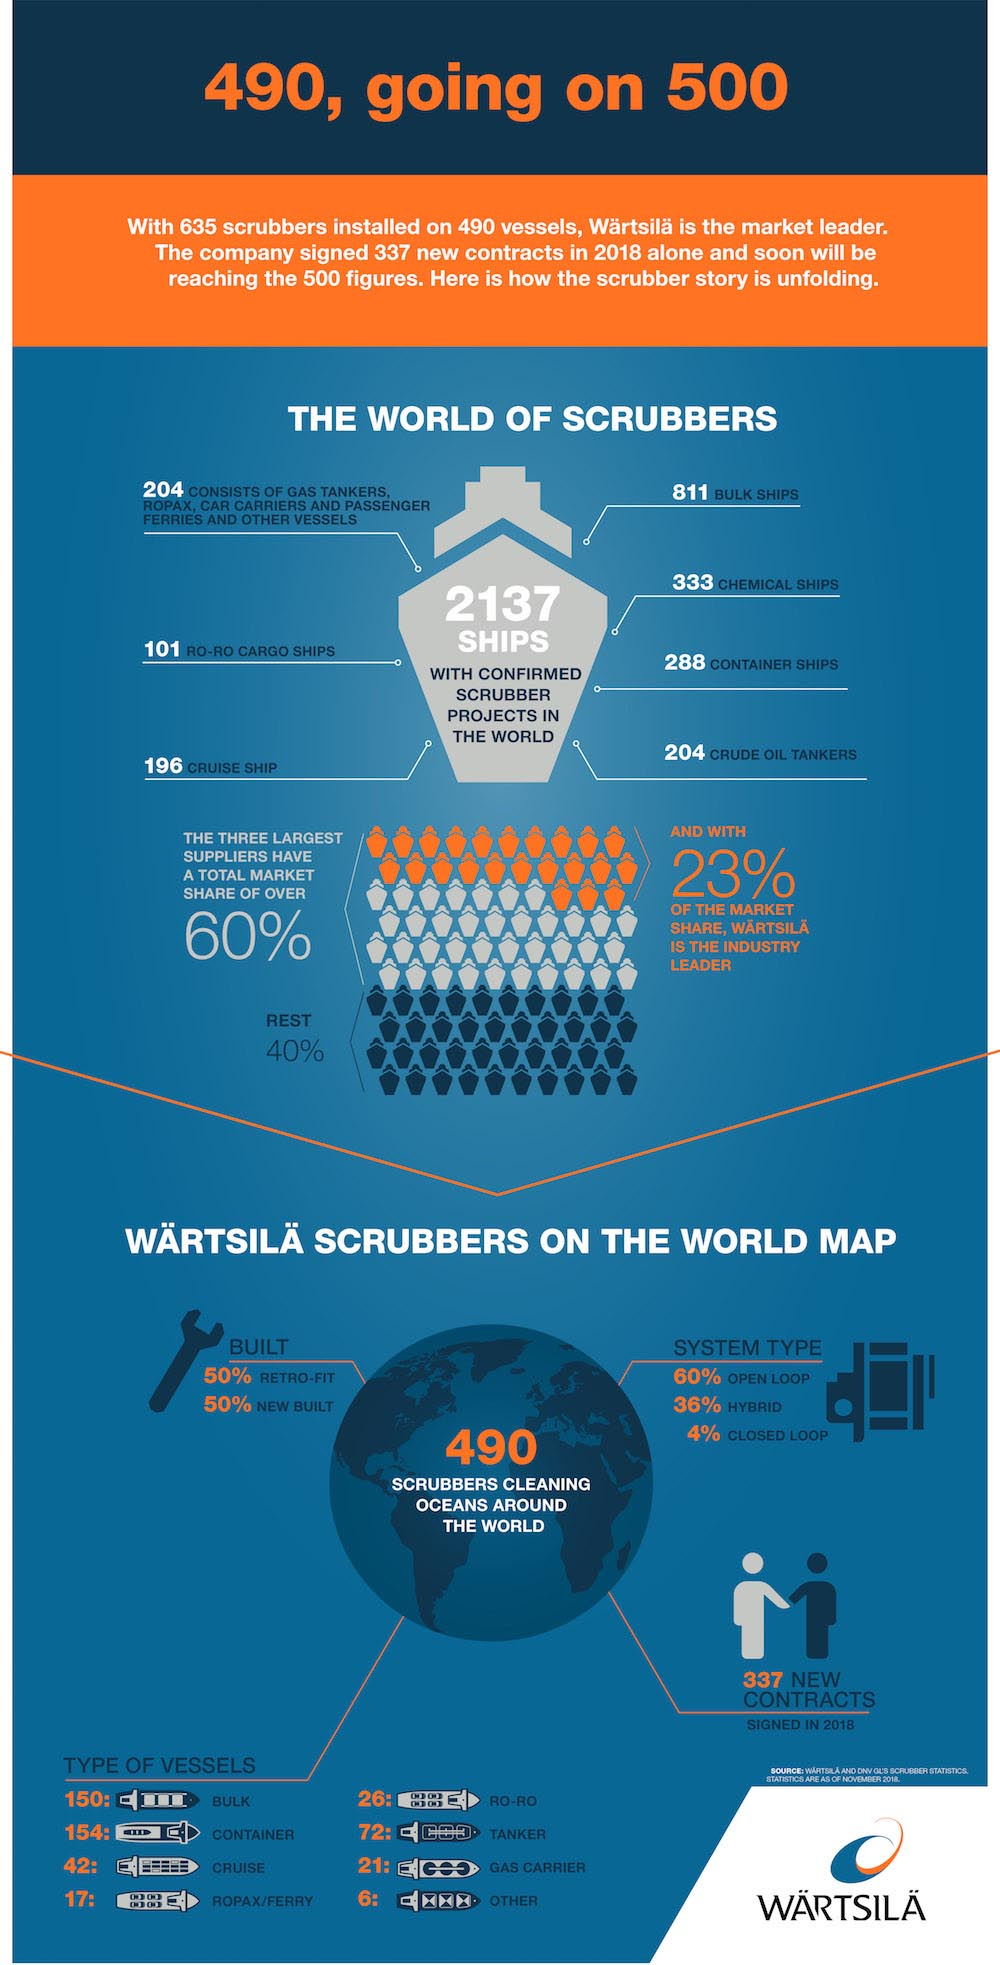 The world of Wartsila Scrubbers 2